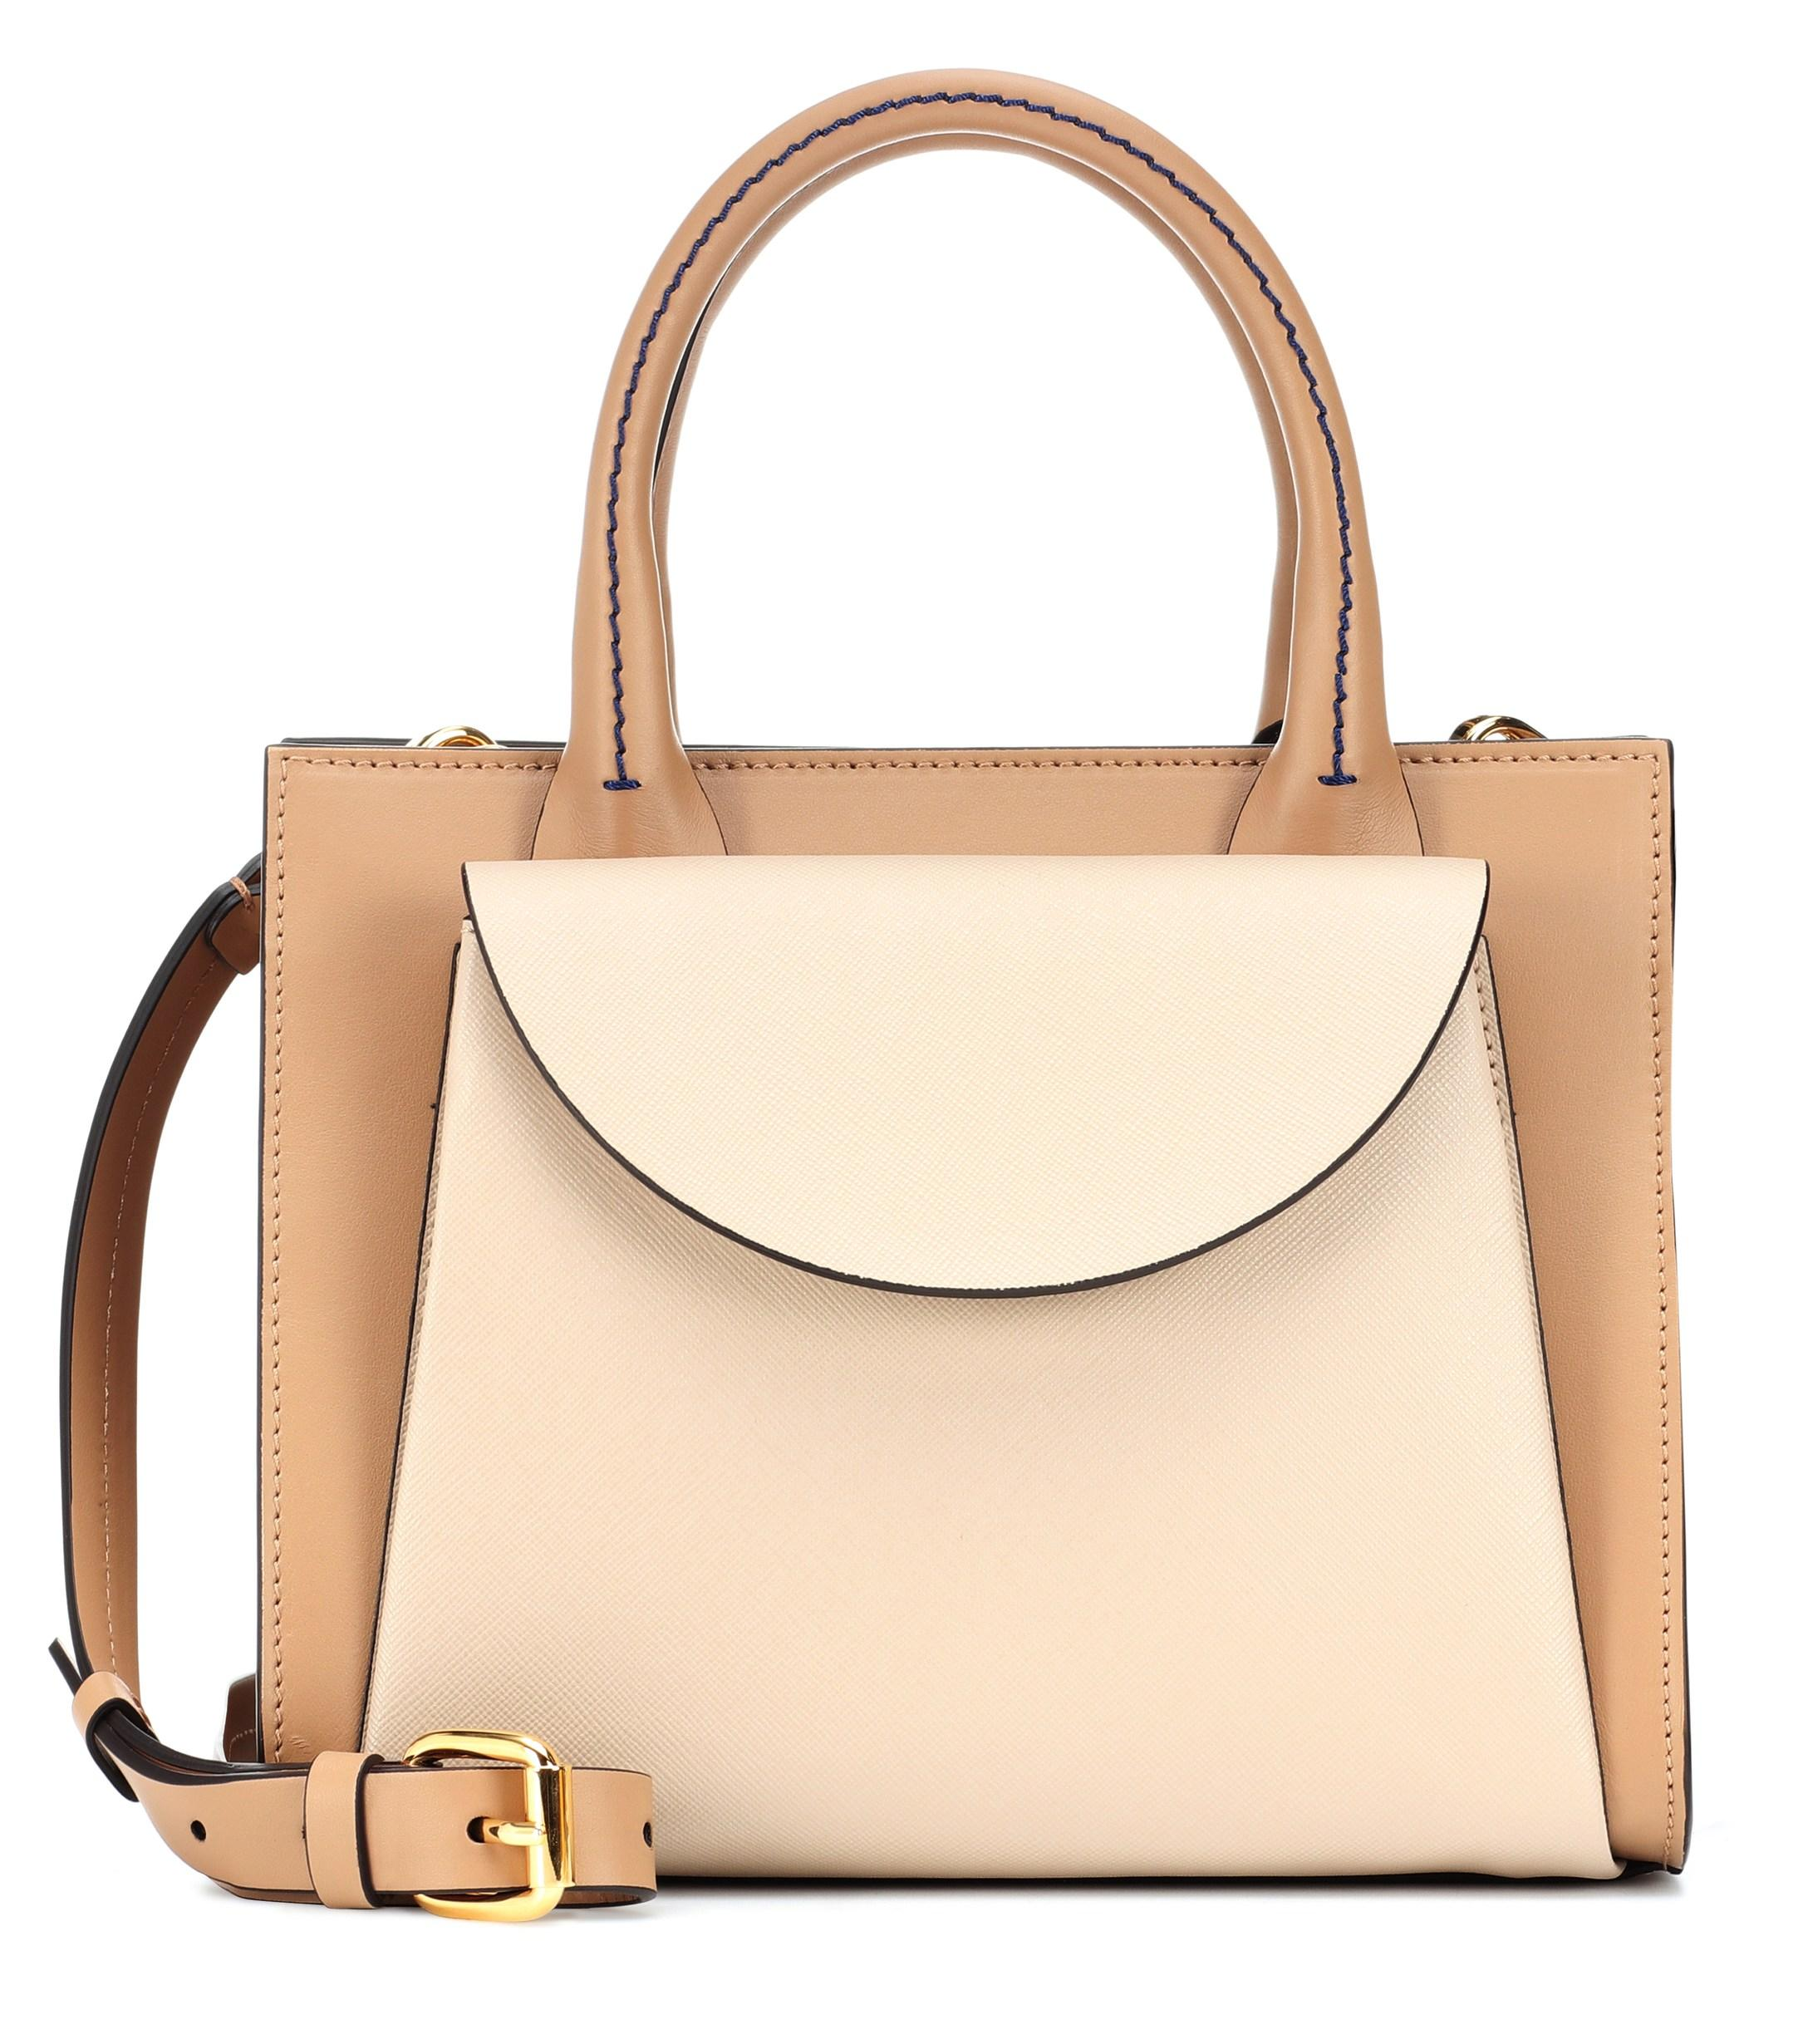 f8b179704f16 Lyst - Marni Law Leather Tote in Brown